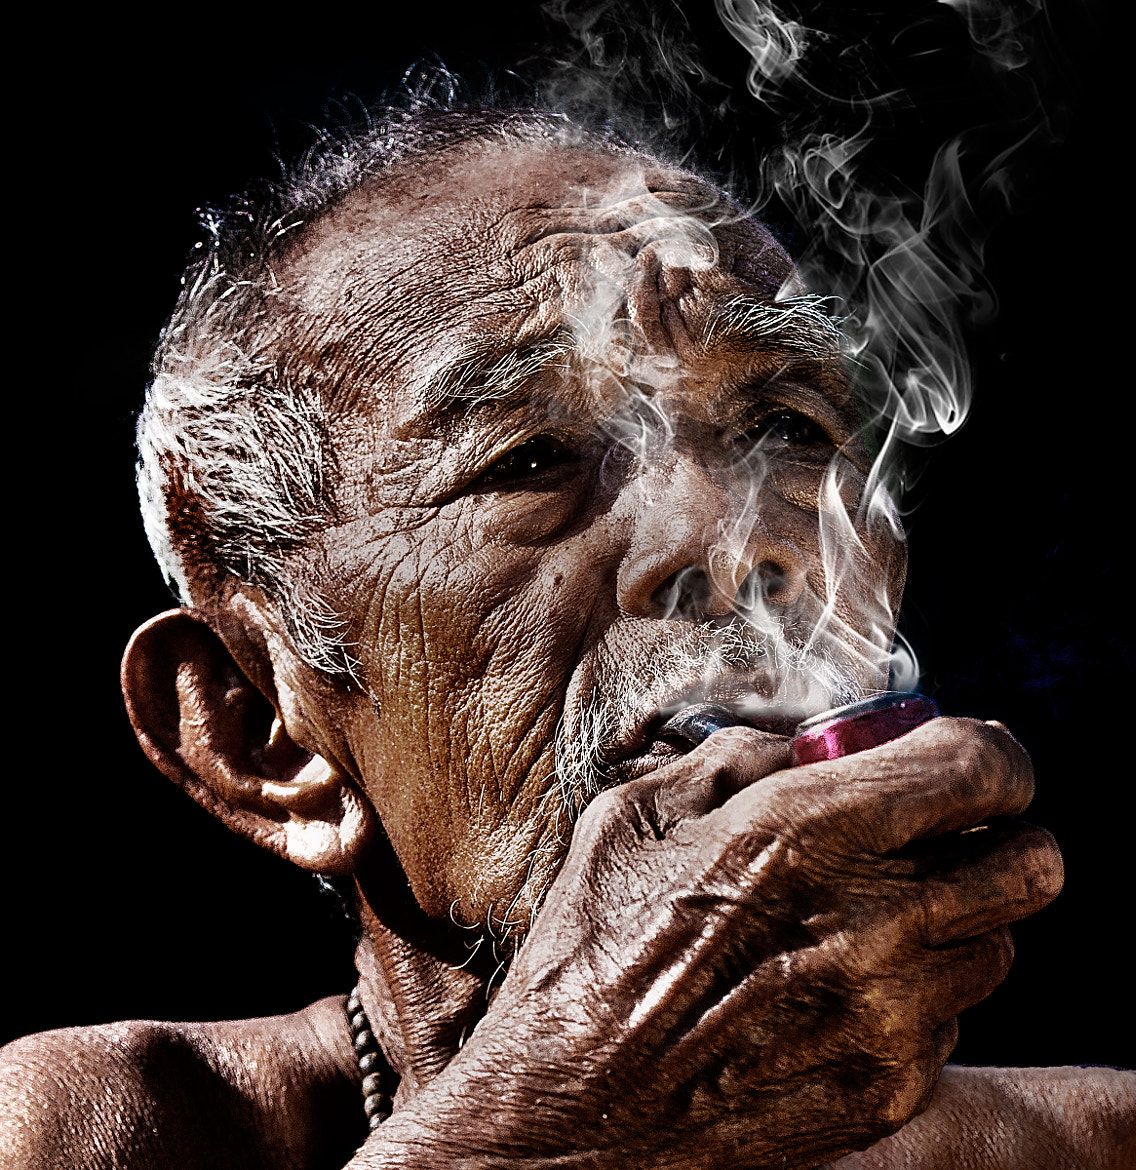 Photograph My cigarette. by Hendrik Cuaca on 500px